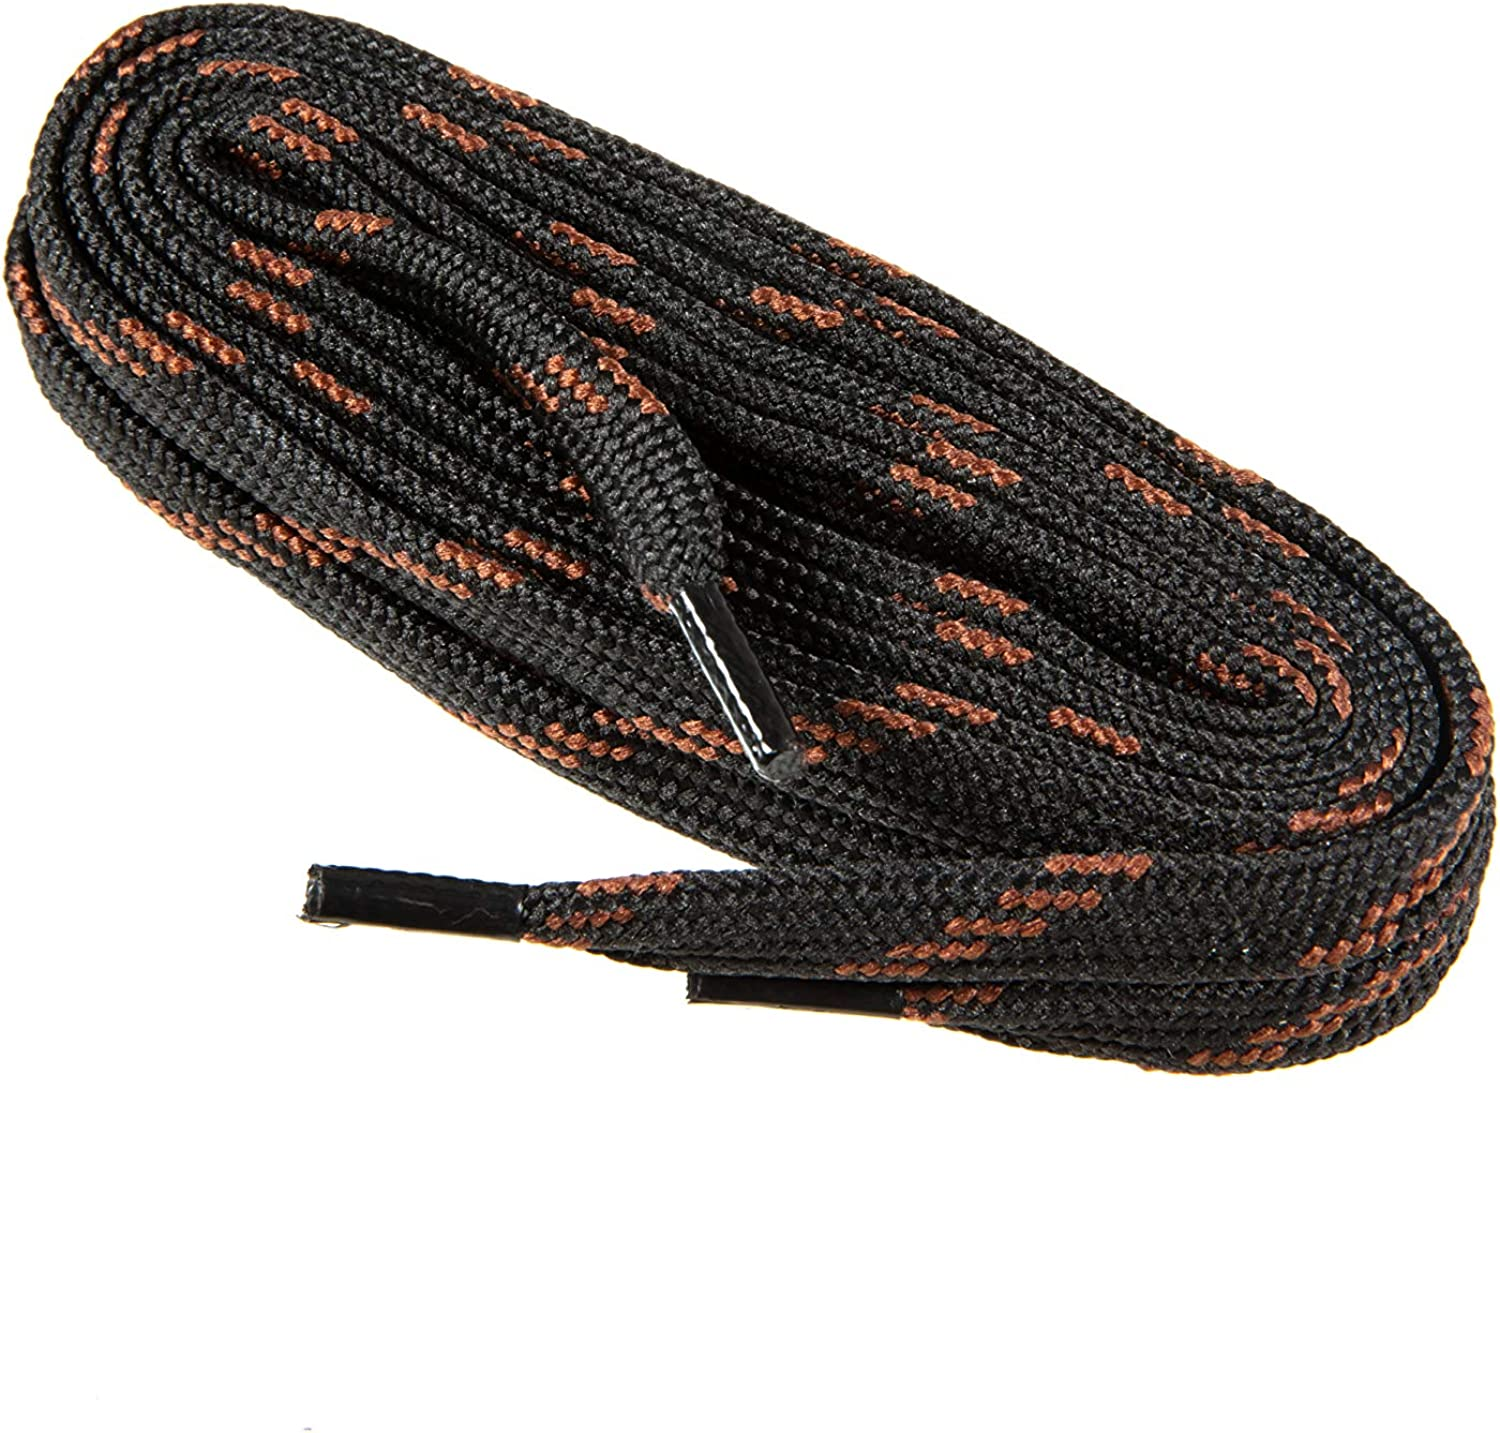 Flat Shoe Laces For Work Boots Shoes wth - half 9 9176 brown black High quality